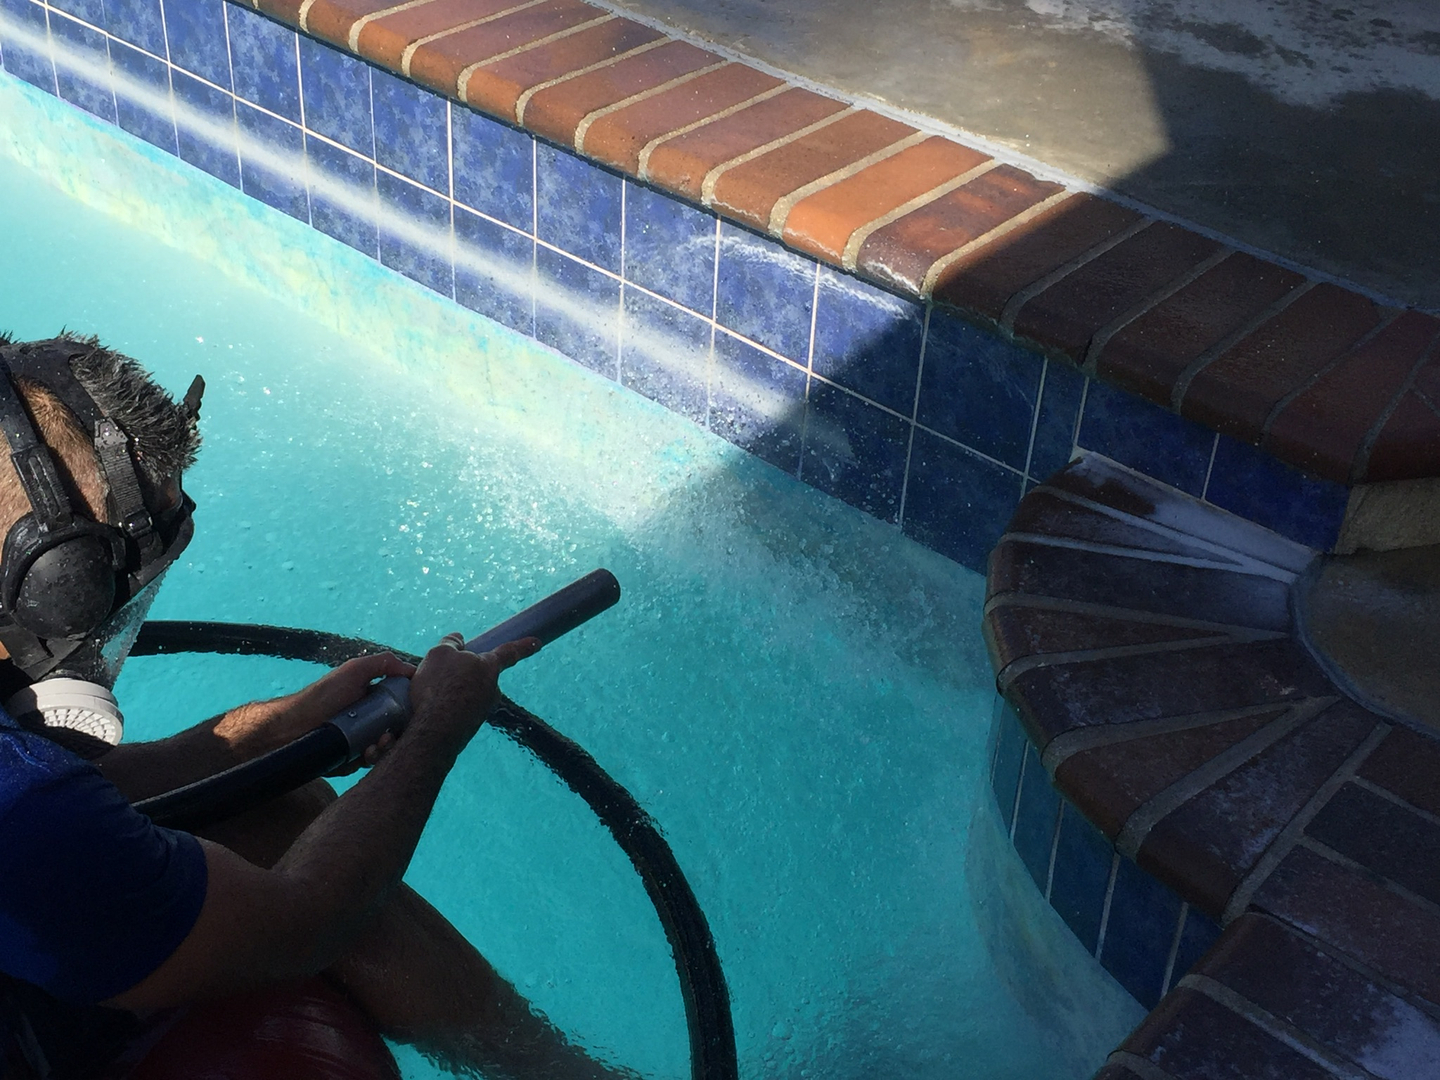 Superior Pool Tile Cleaning & Repair Service | Yorba Linda ...